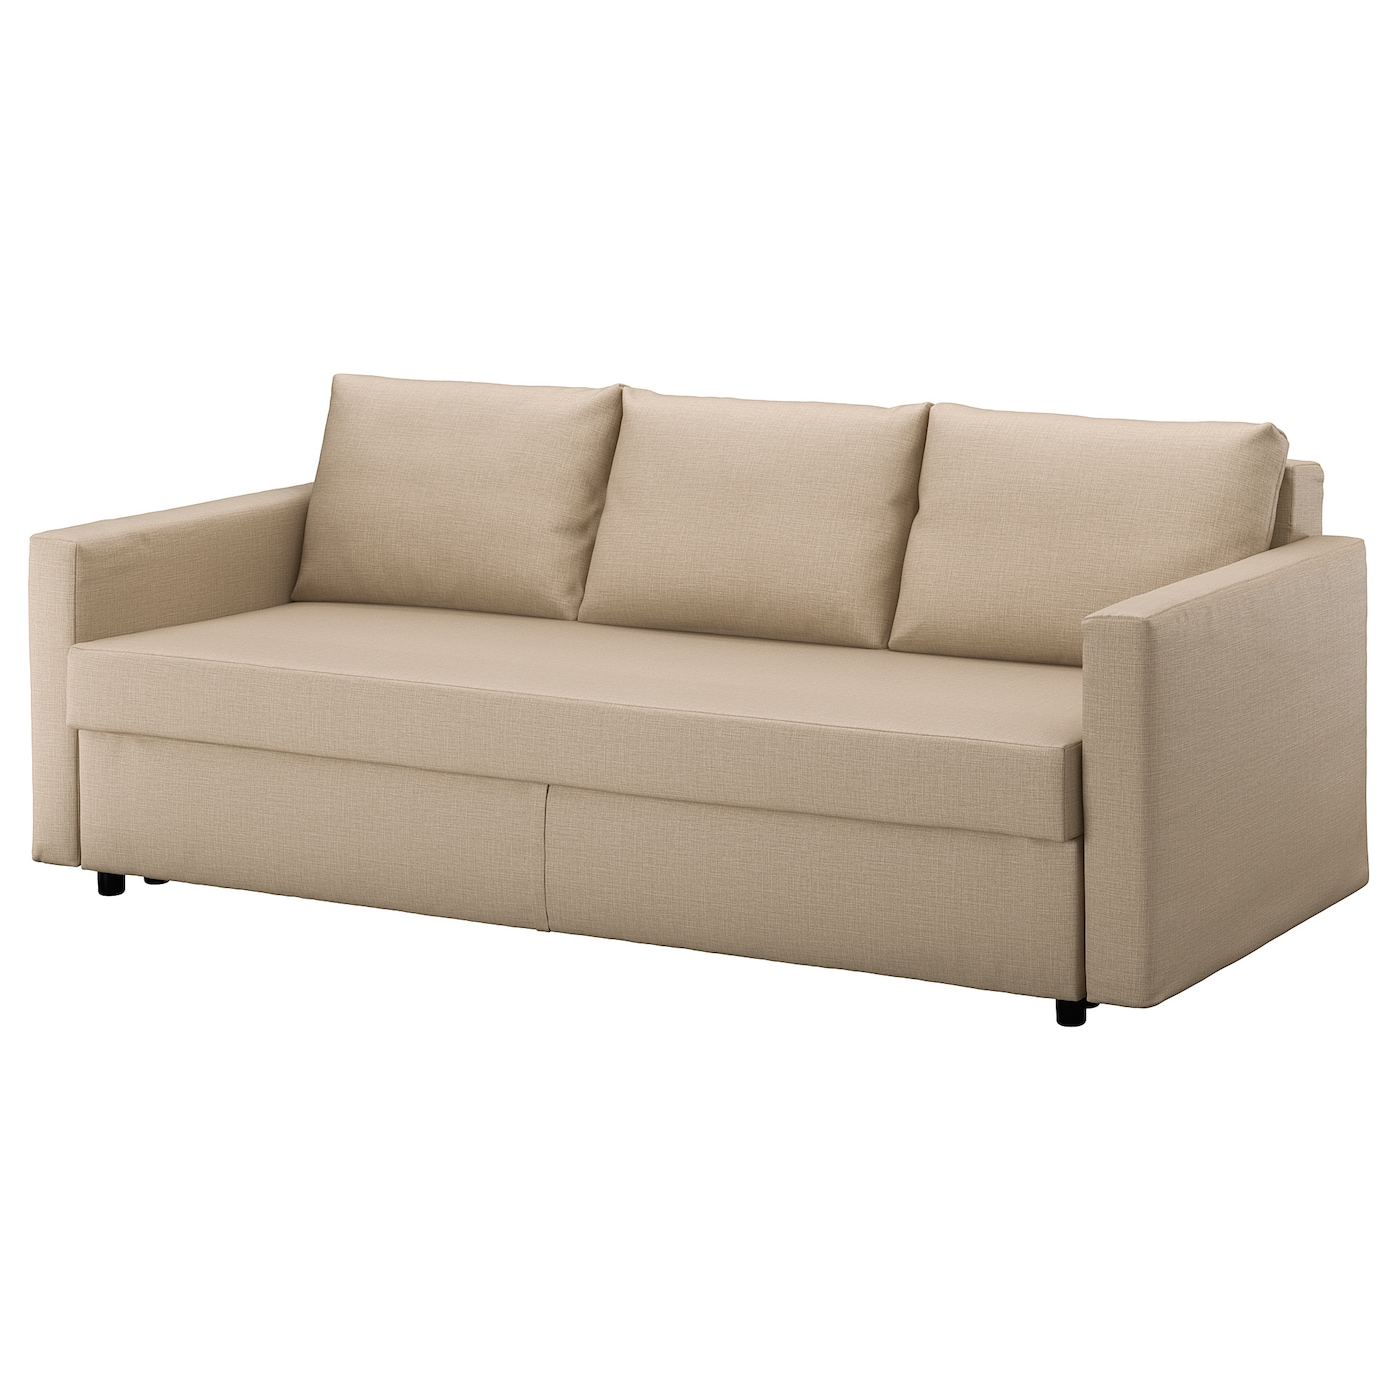 Friheten three seat sofa bed skiftebo beige ikea for Sofa cama 135 ancho